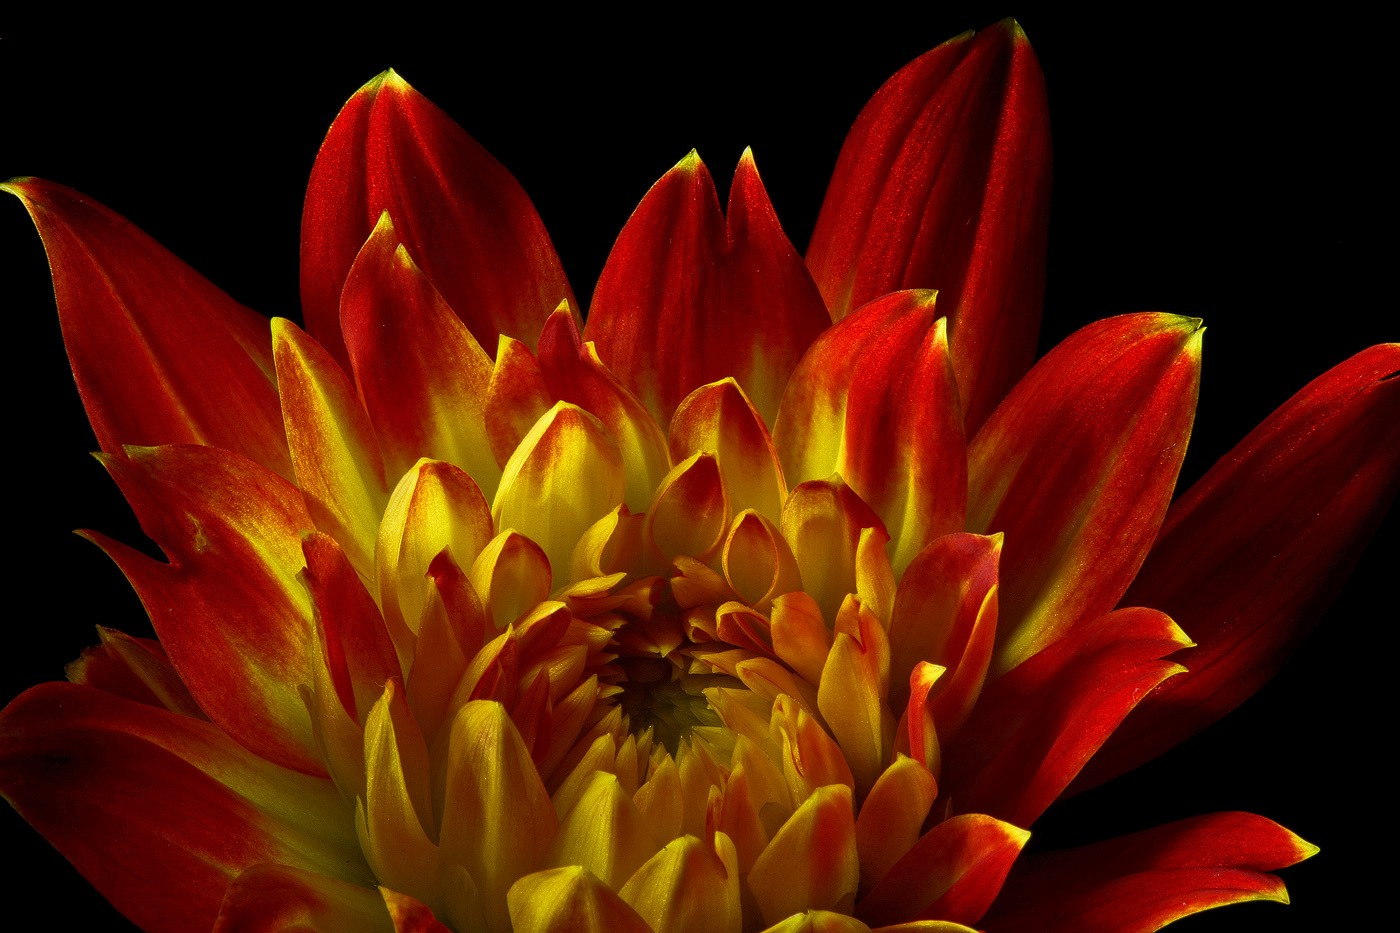 flame dahlia img aw author sava gregory and veren verena